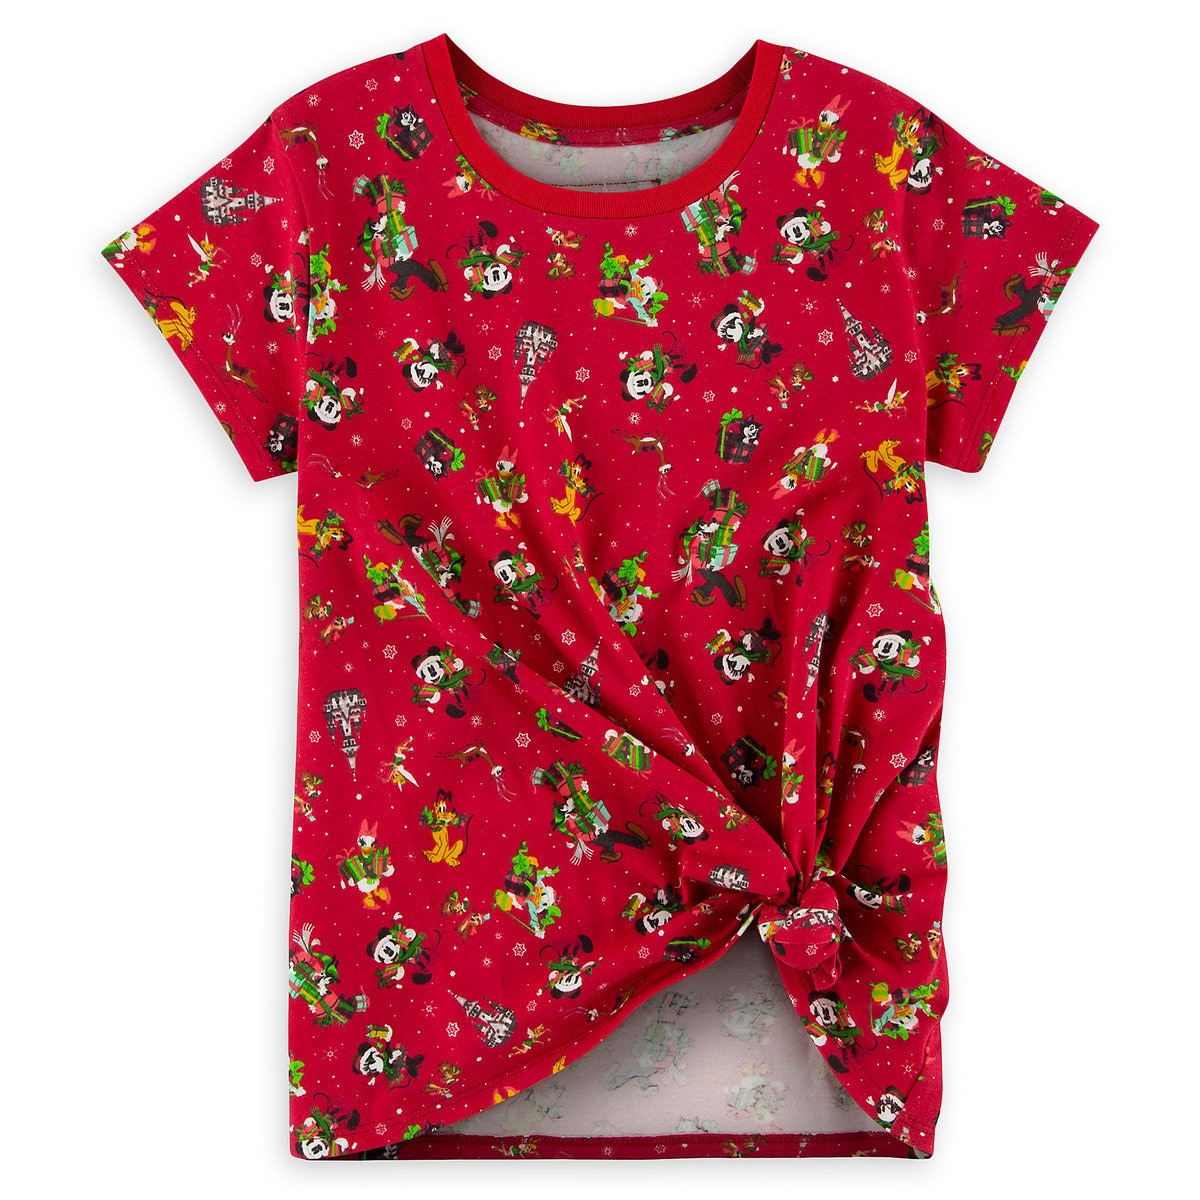 81639e6ba79c59 Product Image of Mickey Mouse and Friends Knotted Holiday T-Shirt for Girls  - Walt